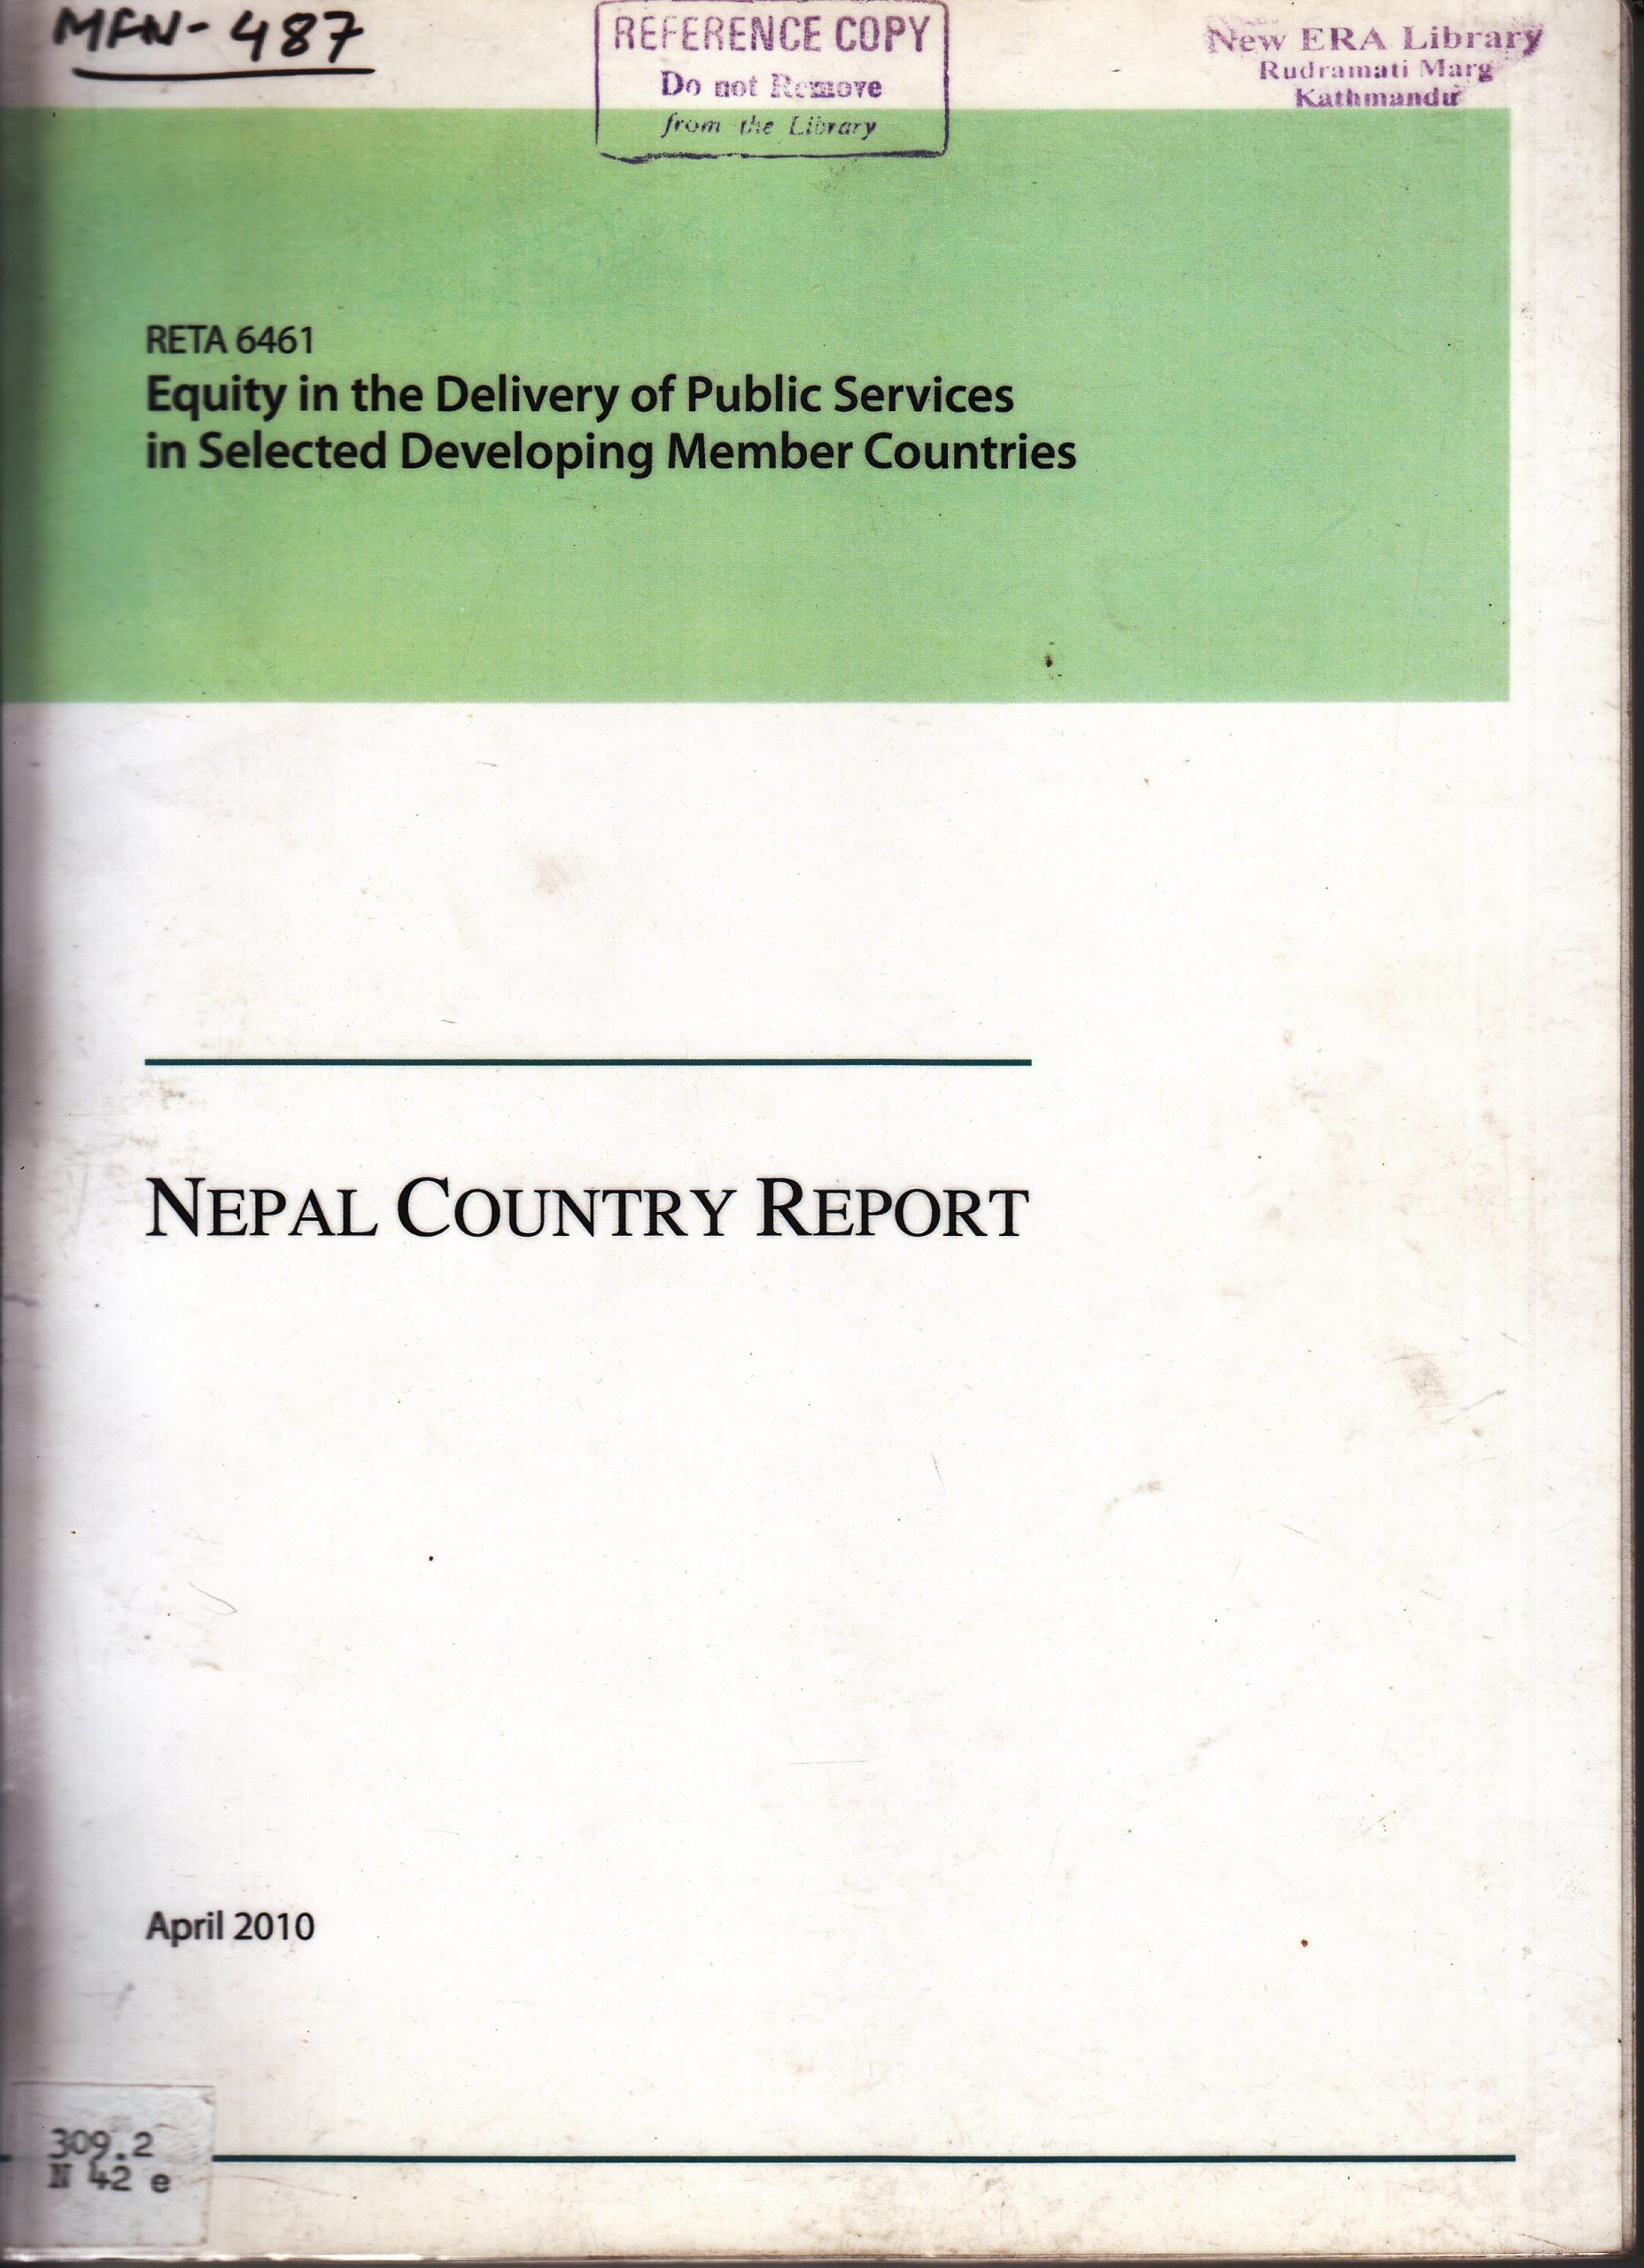 Equity in the Delivery of Public Services in Selected Developing Member Countries: Nepal Country Study